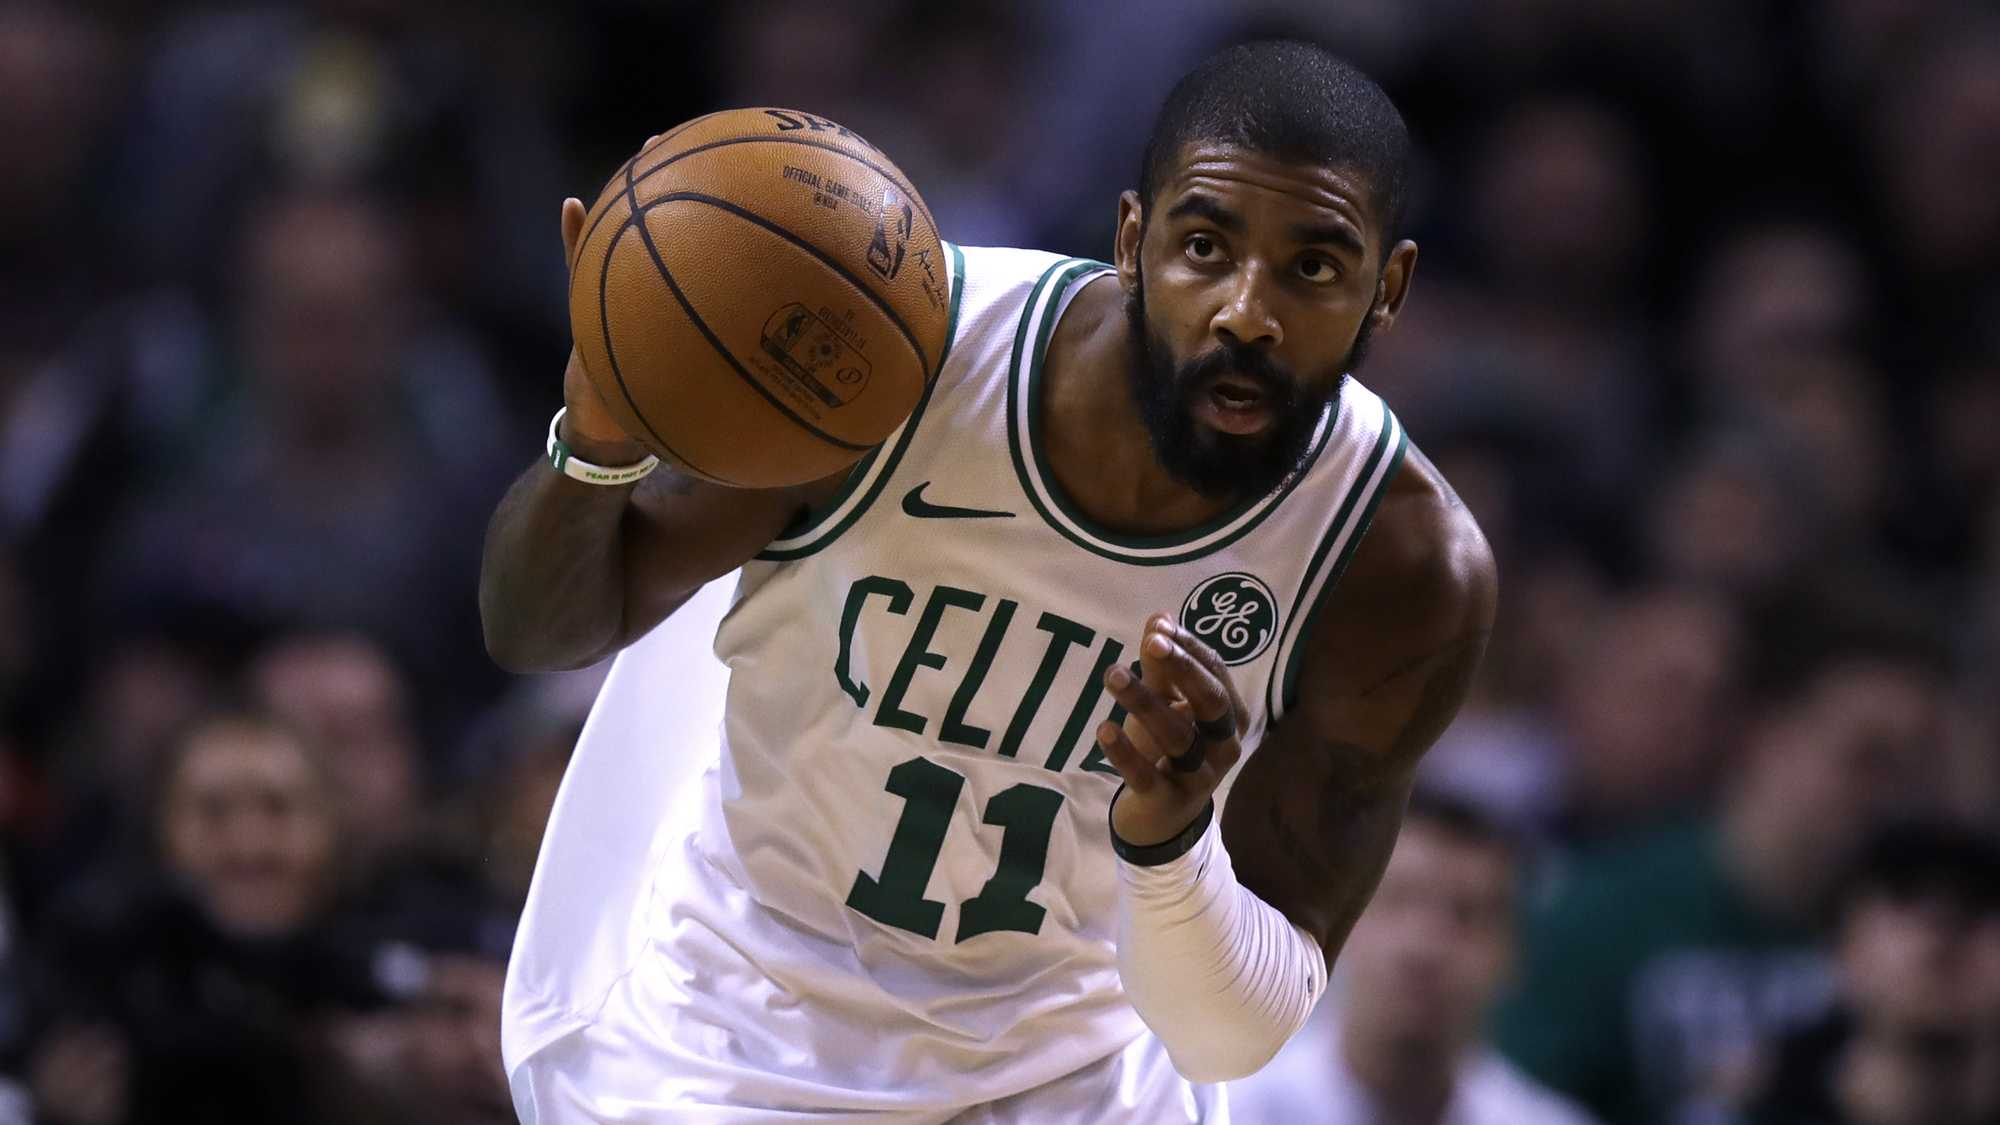 celtics kyrie irving honored - HD 2000×1125